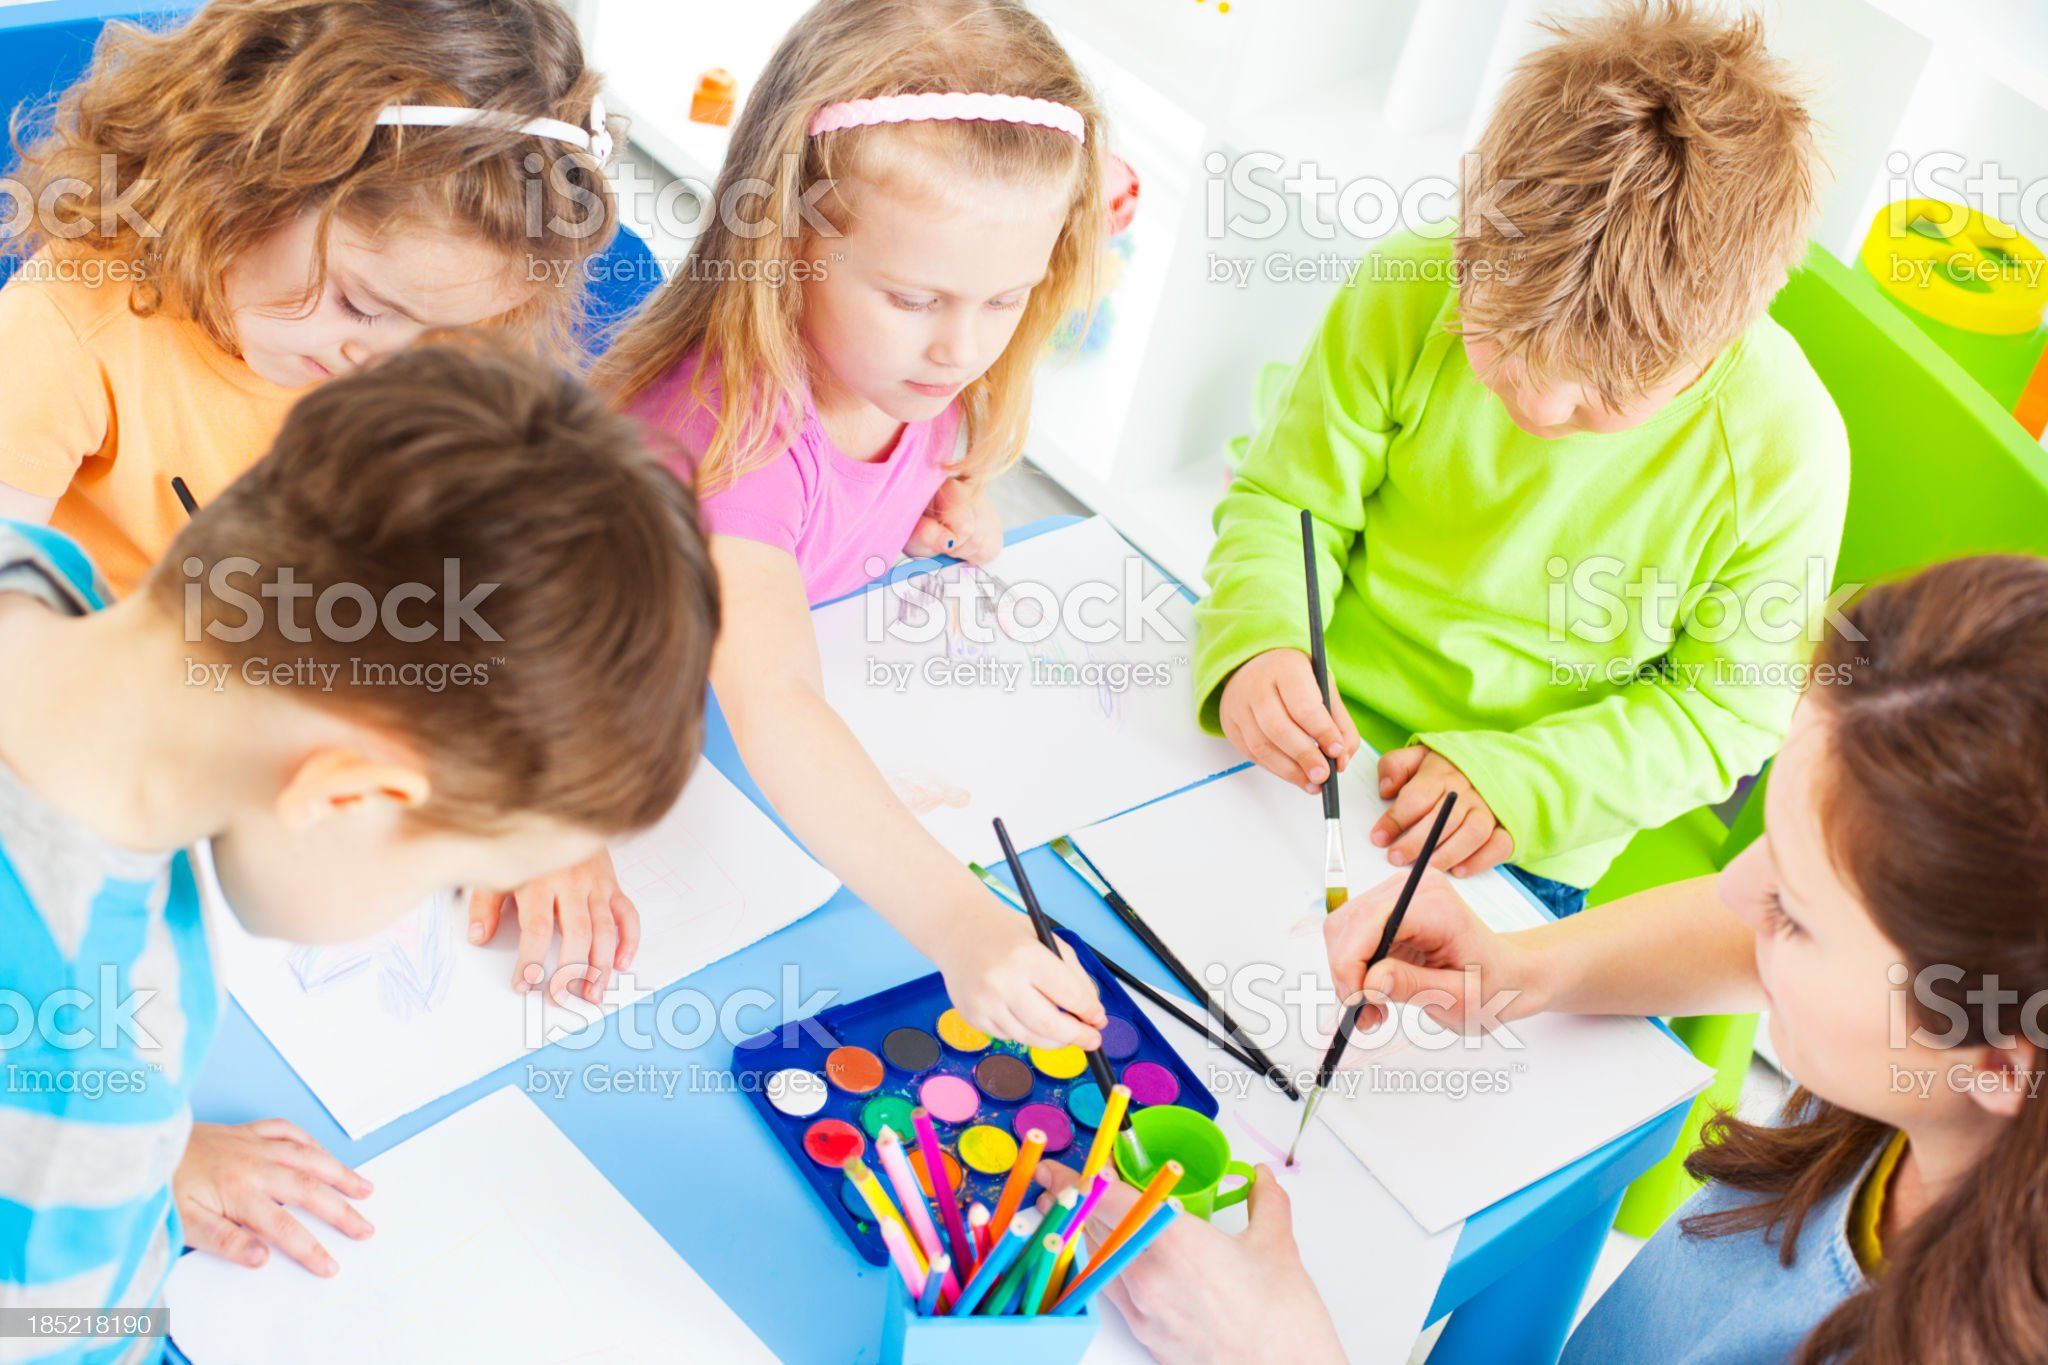 Children Craft Activities Coloring and Drawing. royalty-free stock photo